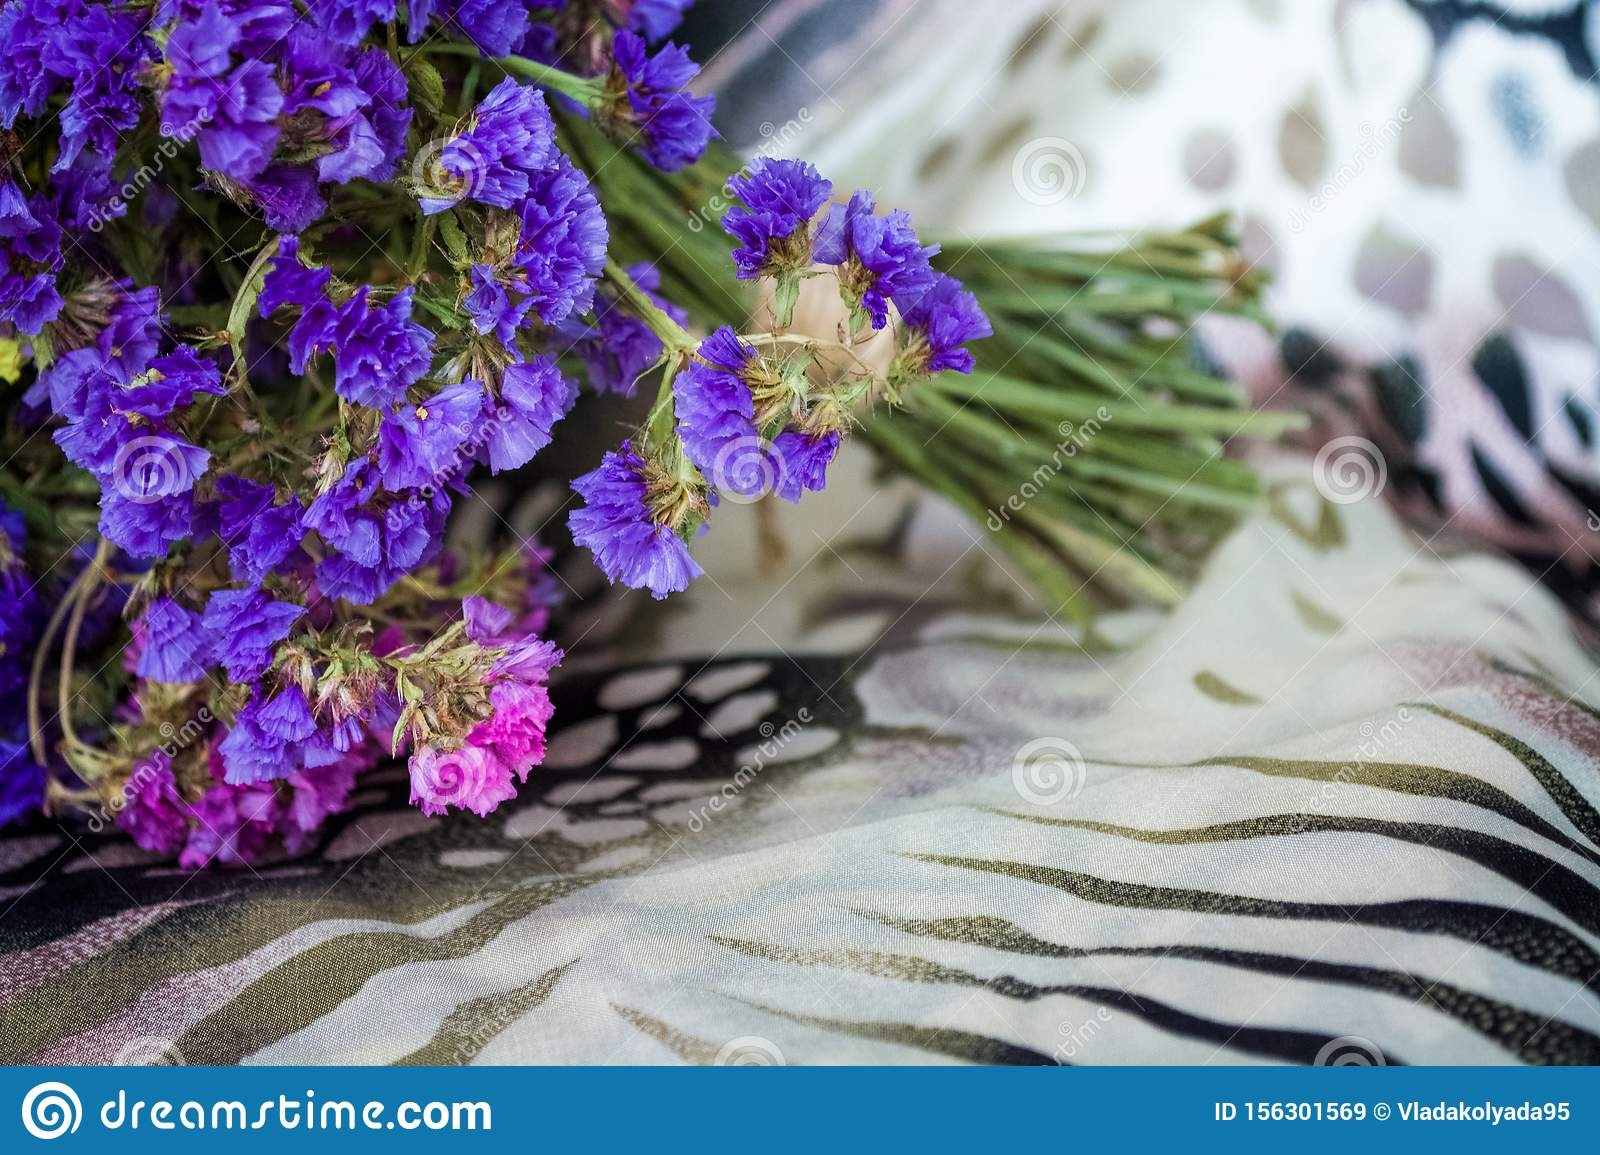 Bouquet Of Field And Arid Flowers On Cloth With Leopard And Zebra Print Stock Image Image Of Garden Color 156301569